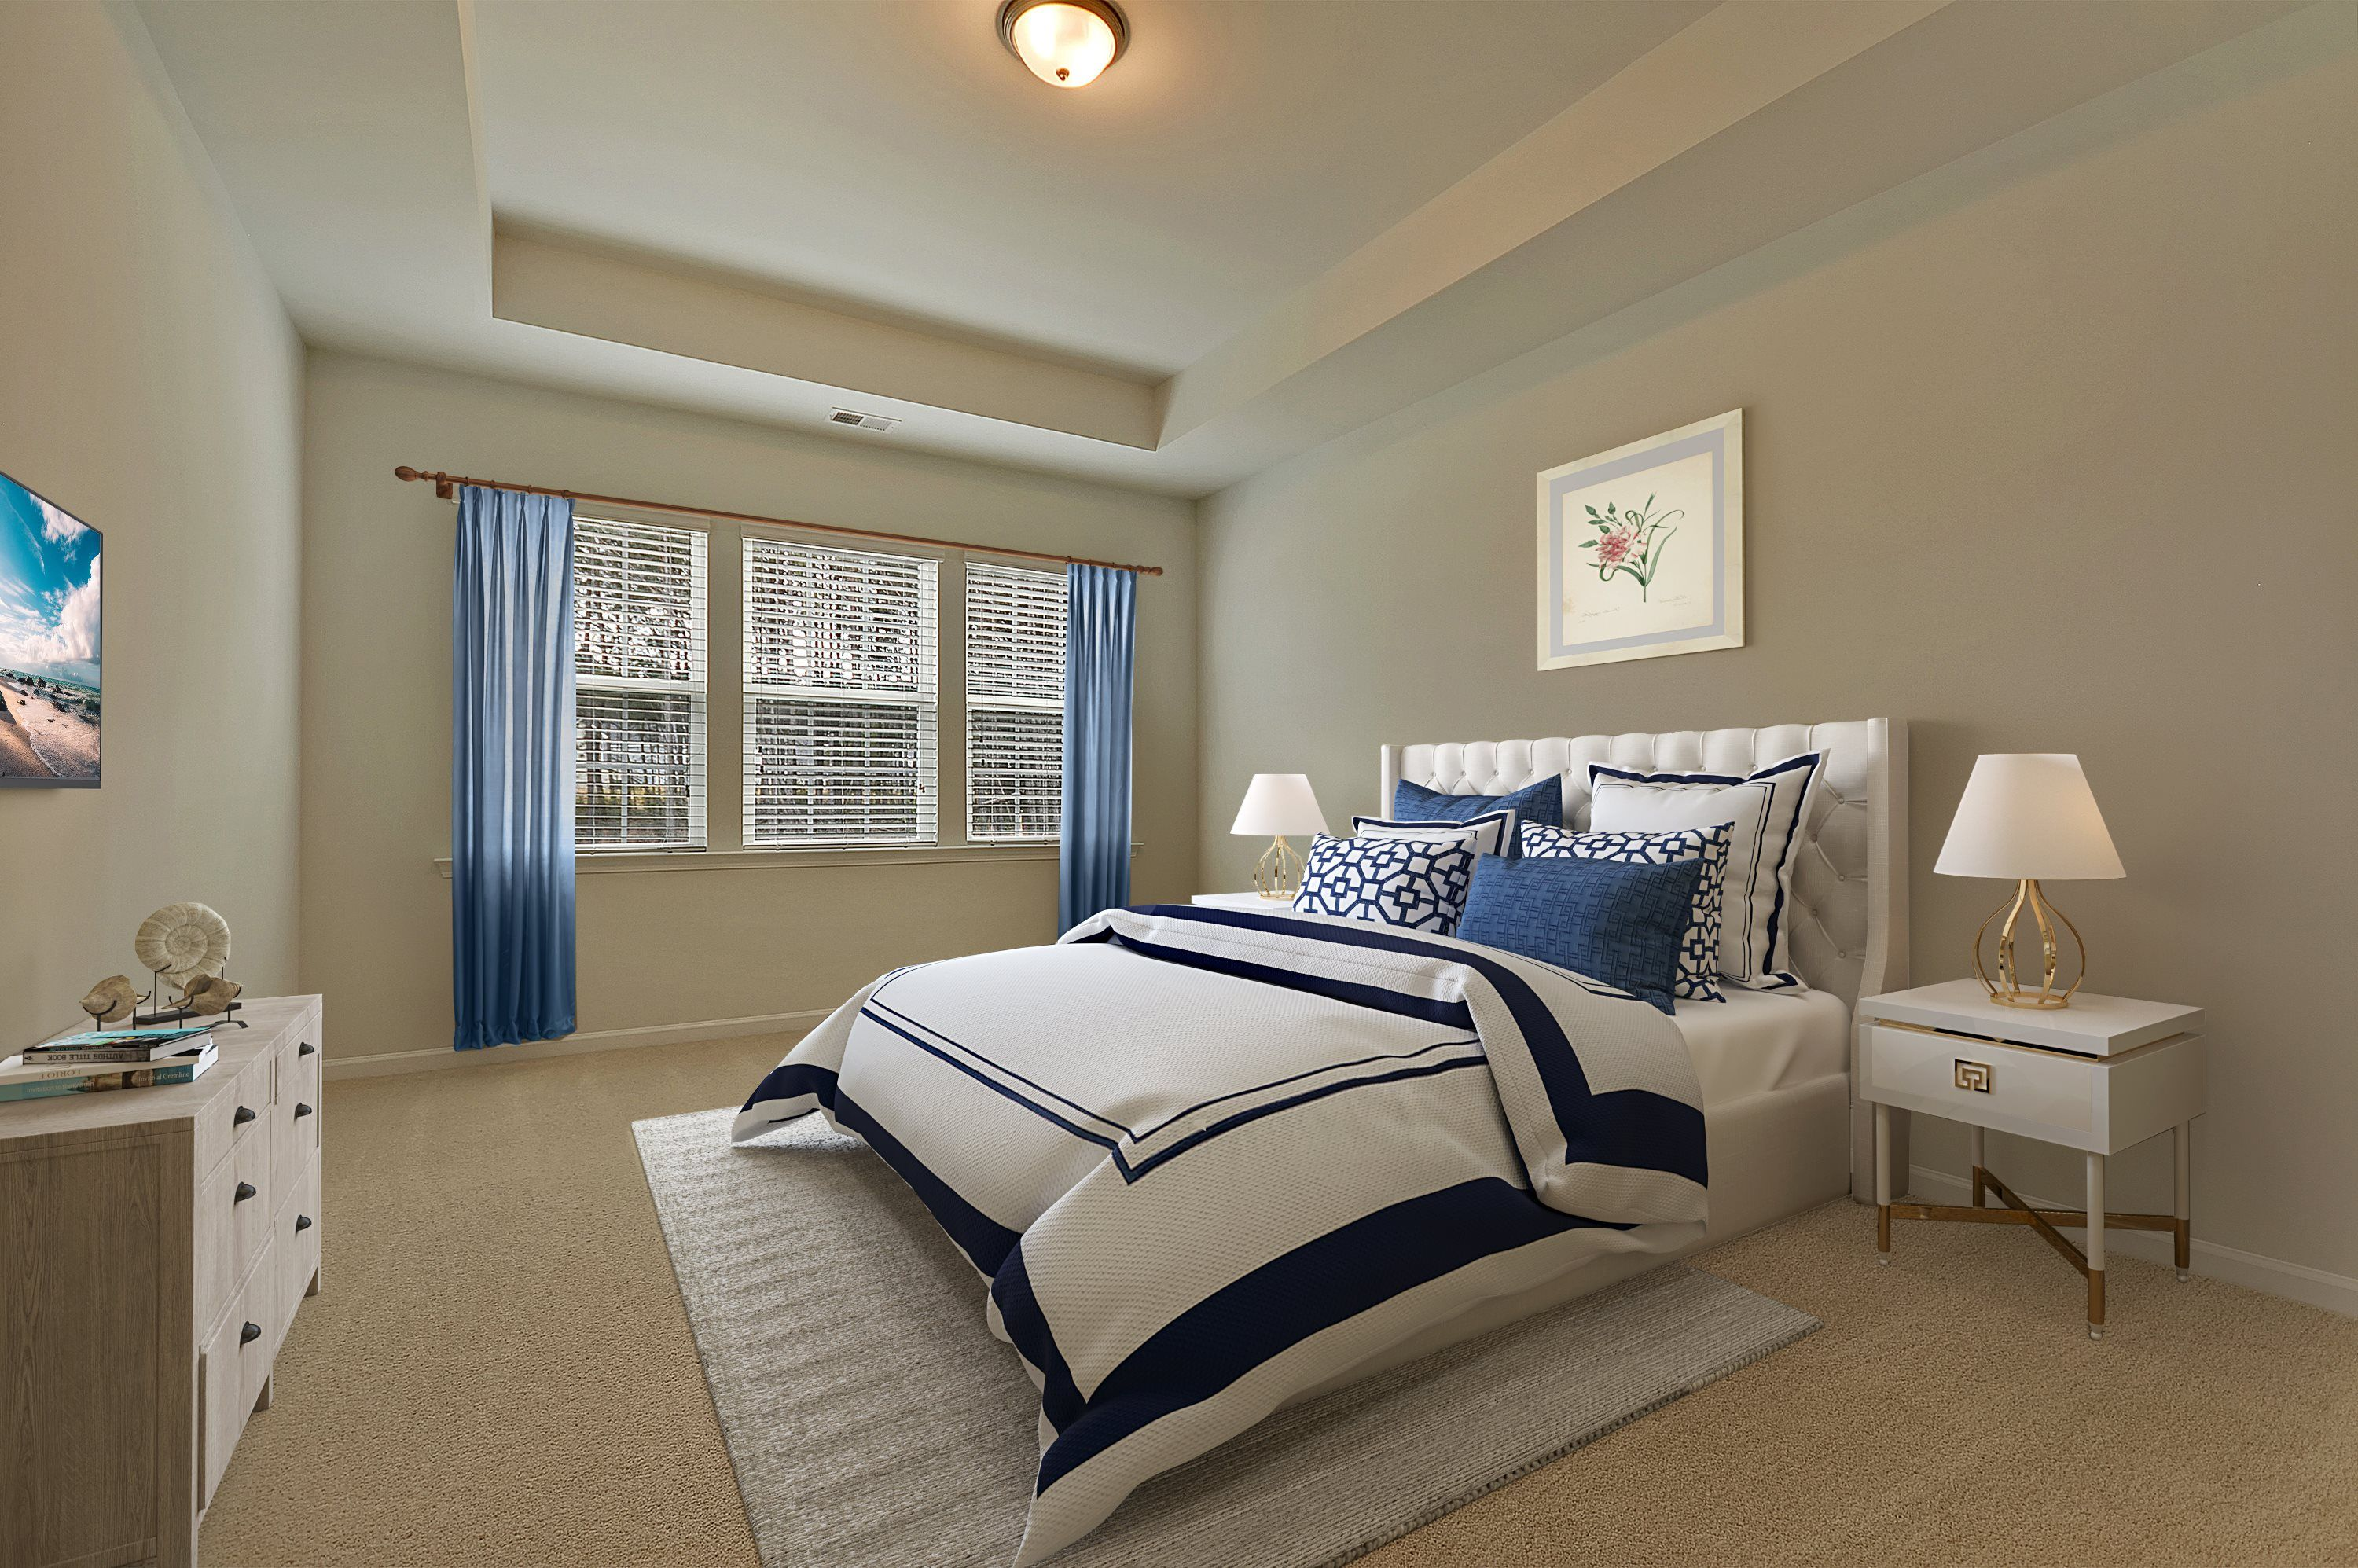 Bedroom featured in the HENNINGER By Lennar in Myrtle Beach, SC